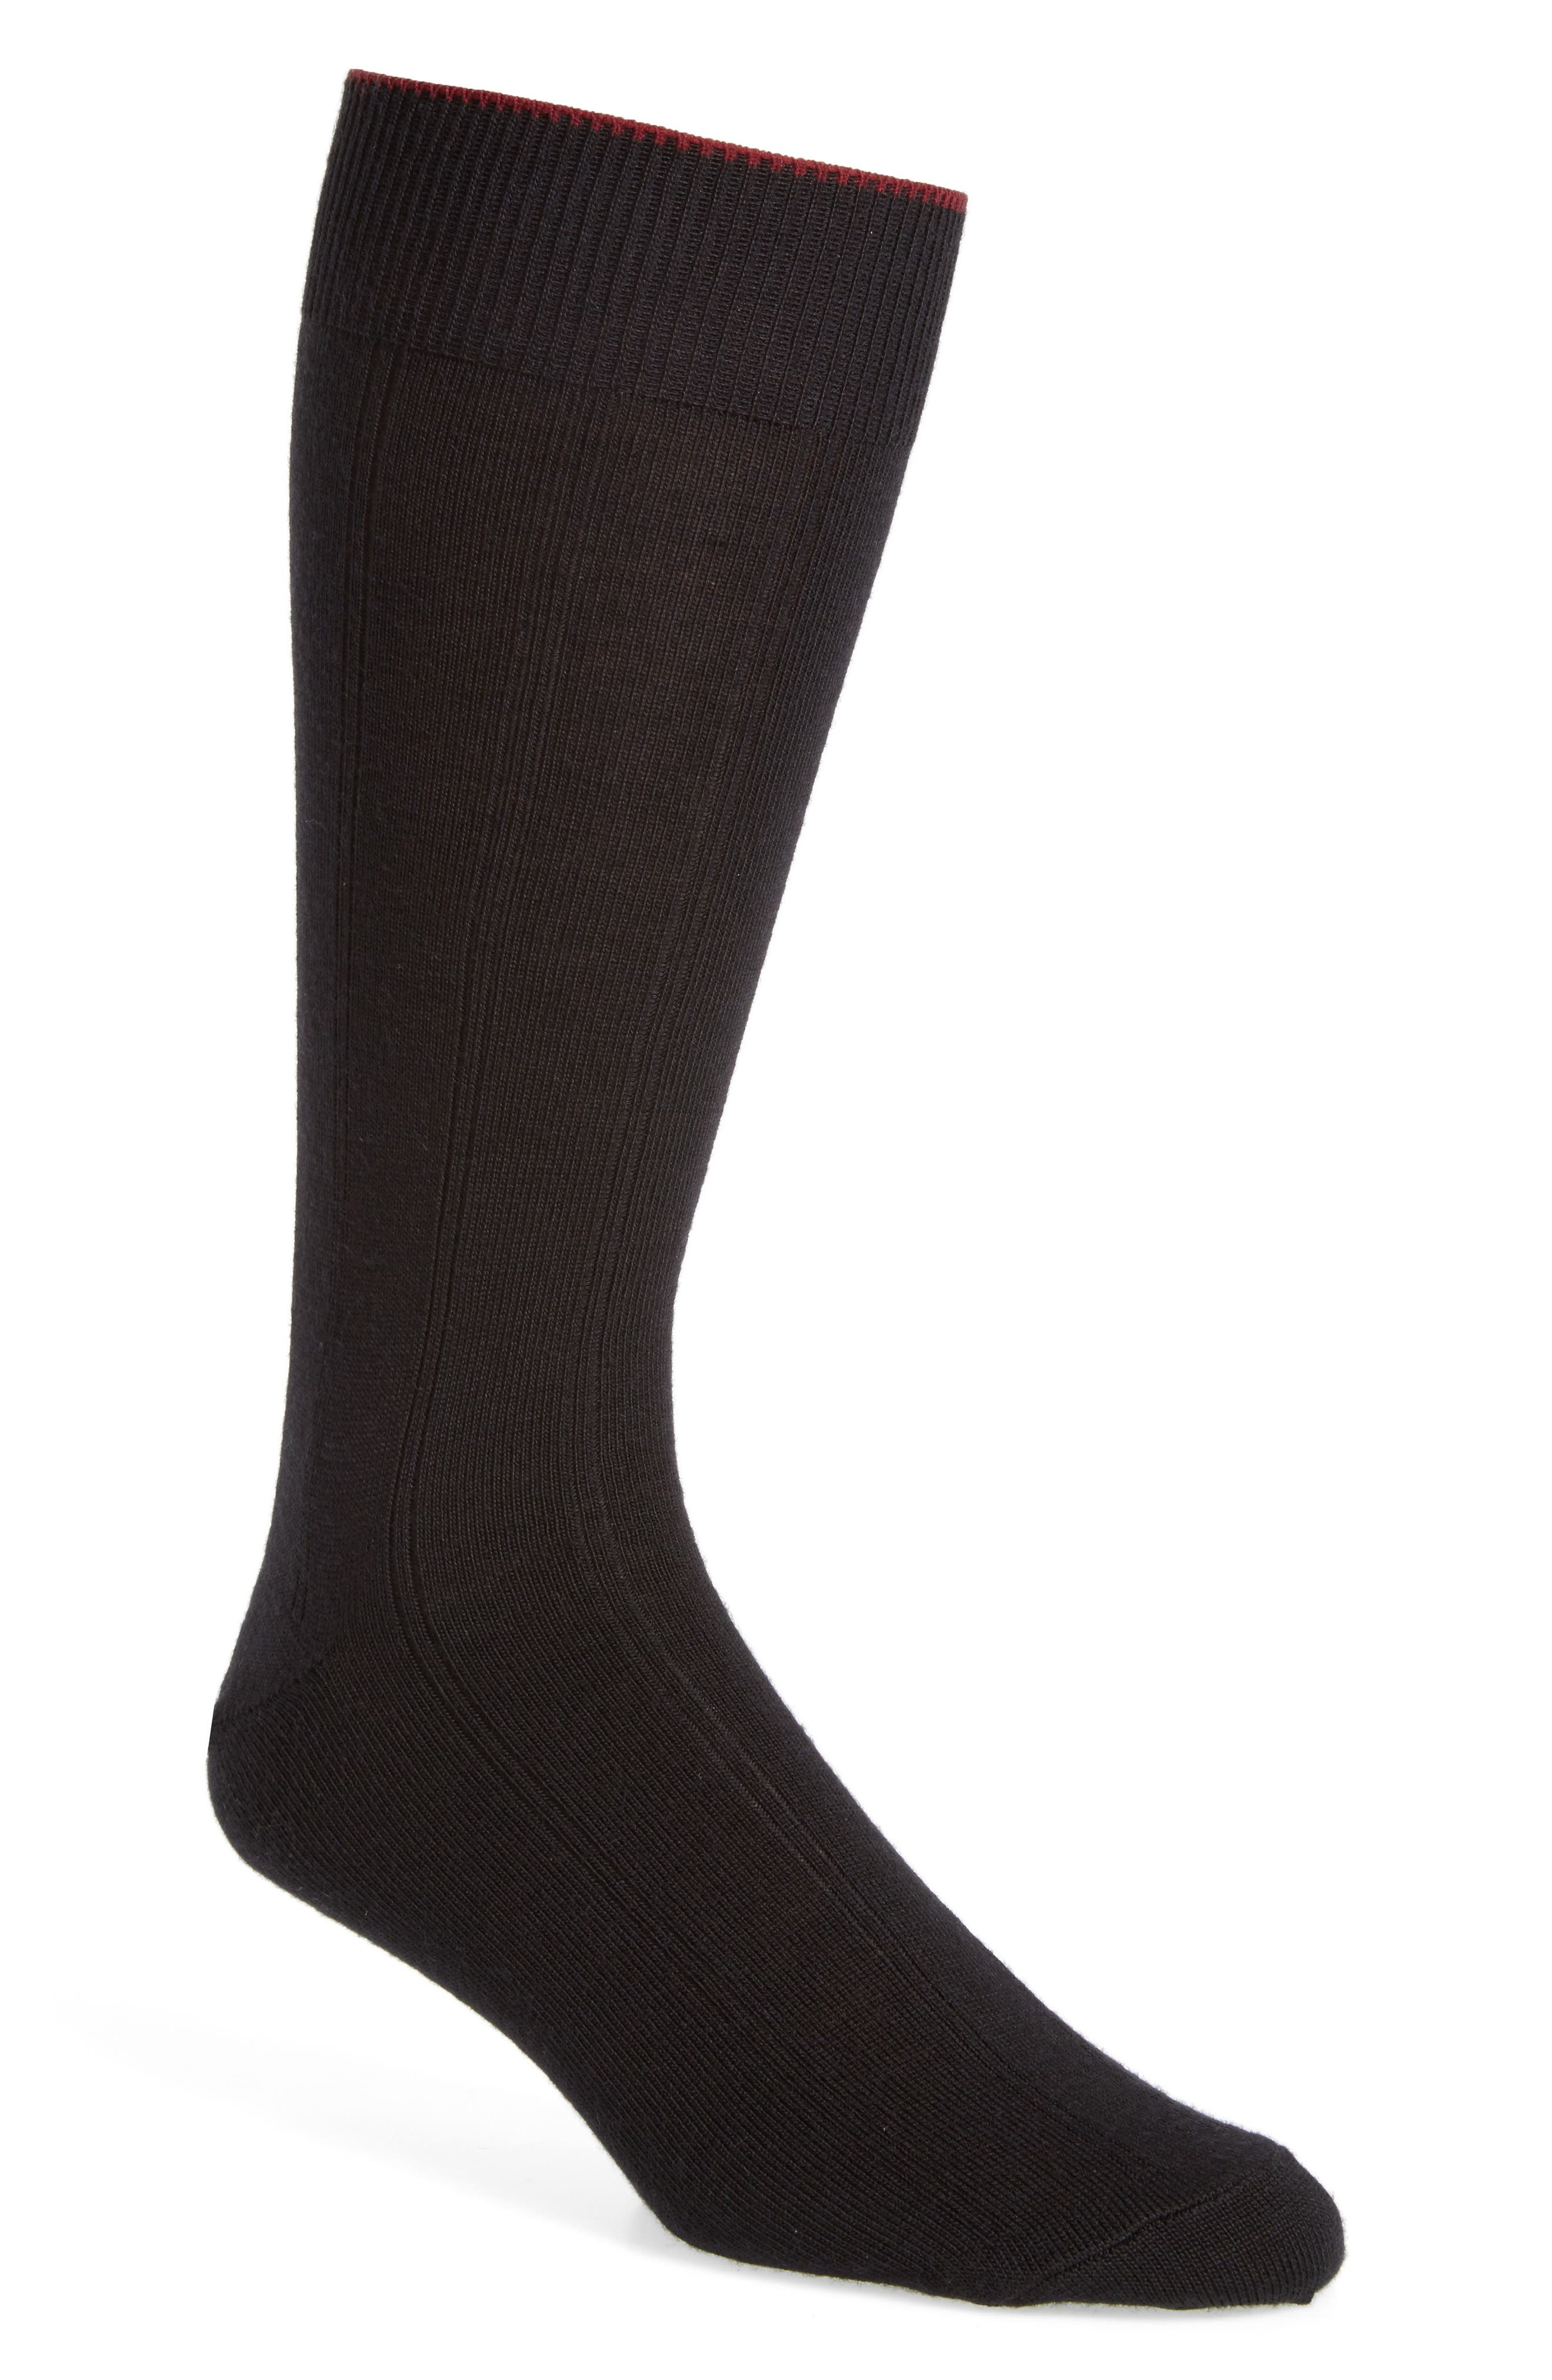 NORDSTROM MEN'S SHOP Rib Wool Blend Socks, Main, color, BLACK